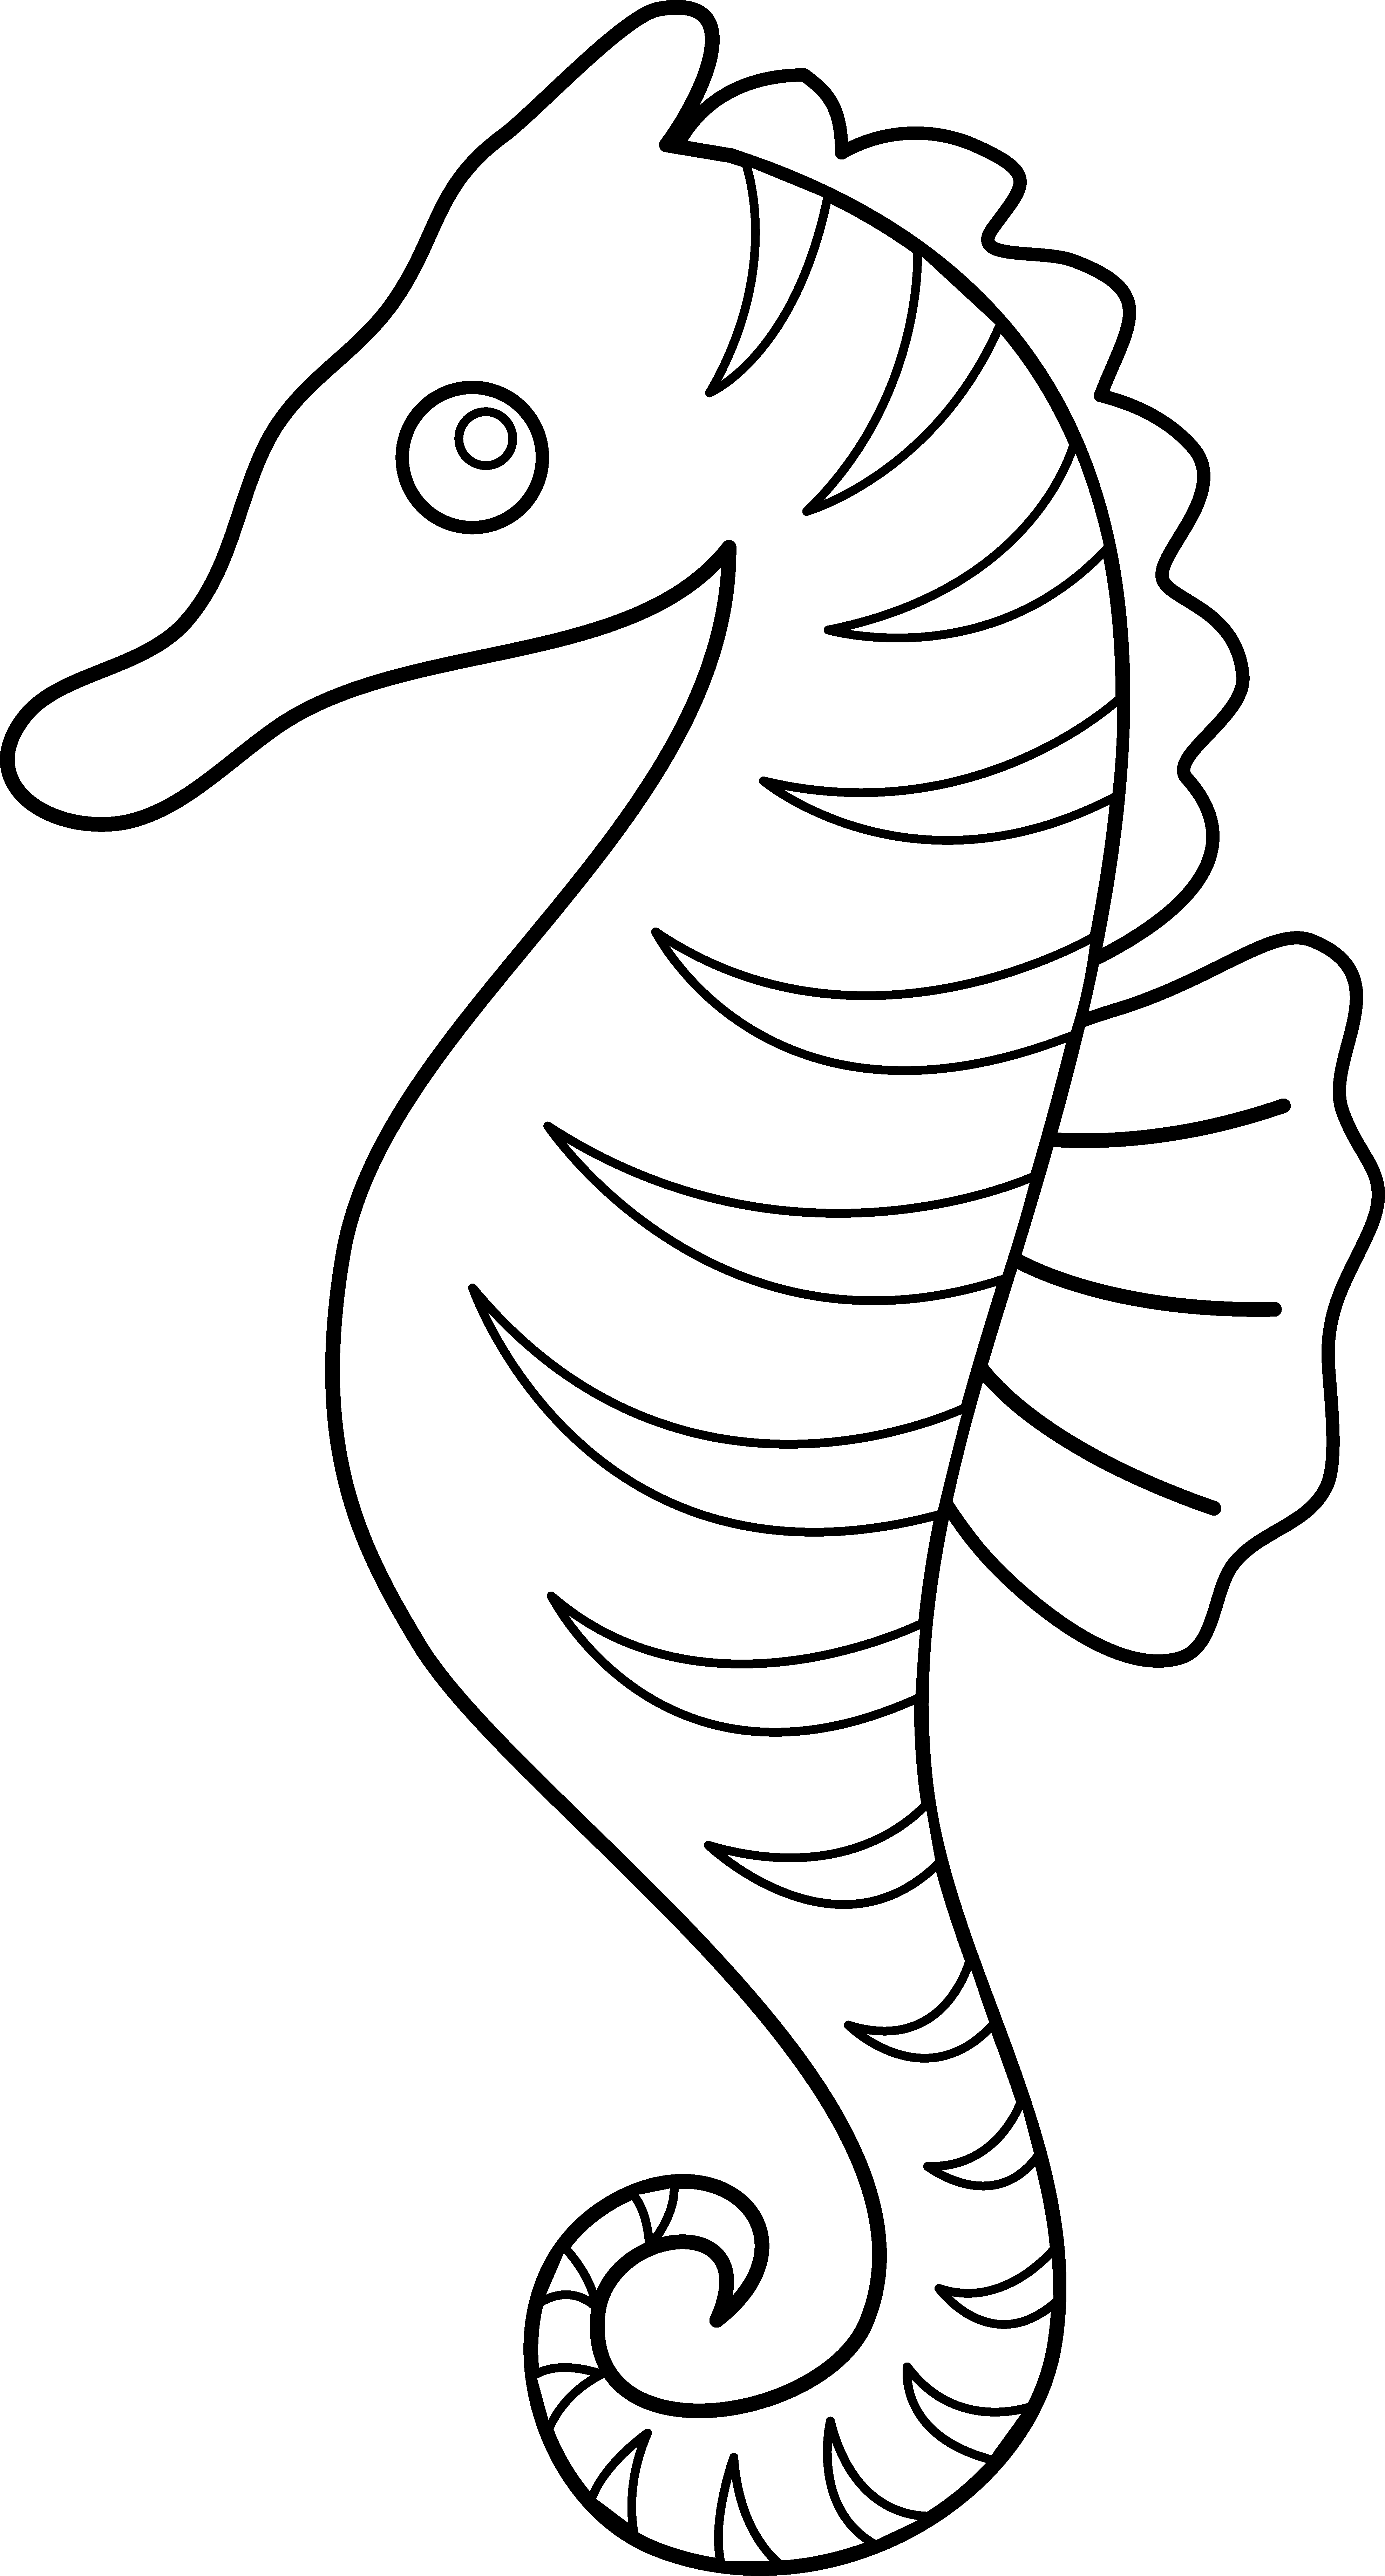 sea horse coloring pages sea horse coloring pages coloring pages to download and coloring pages horse sea